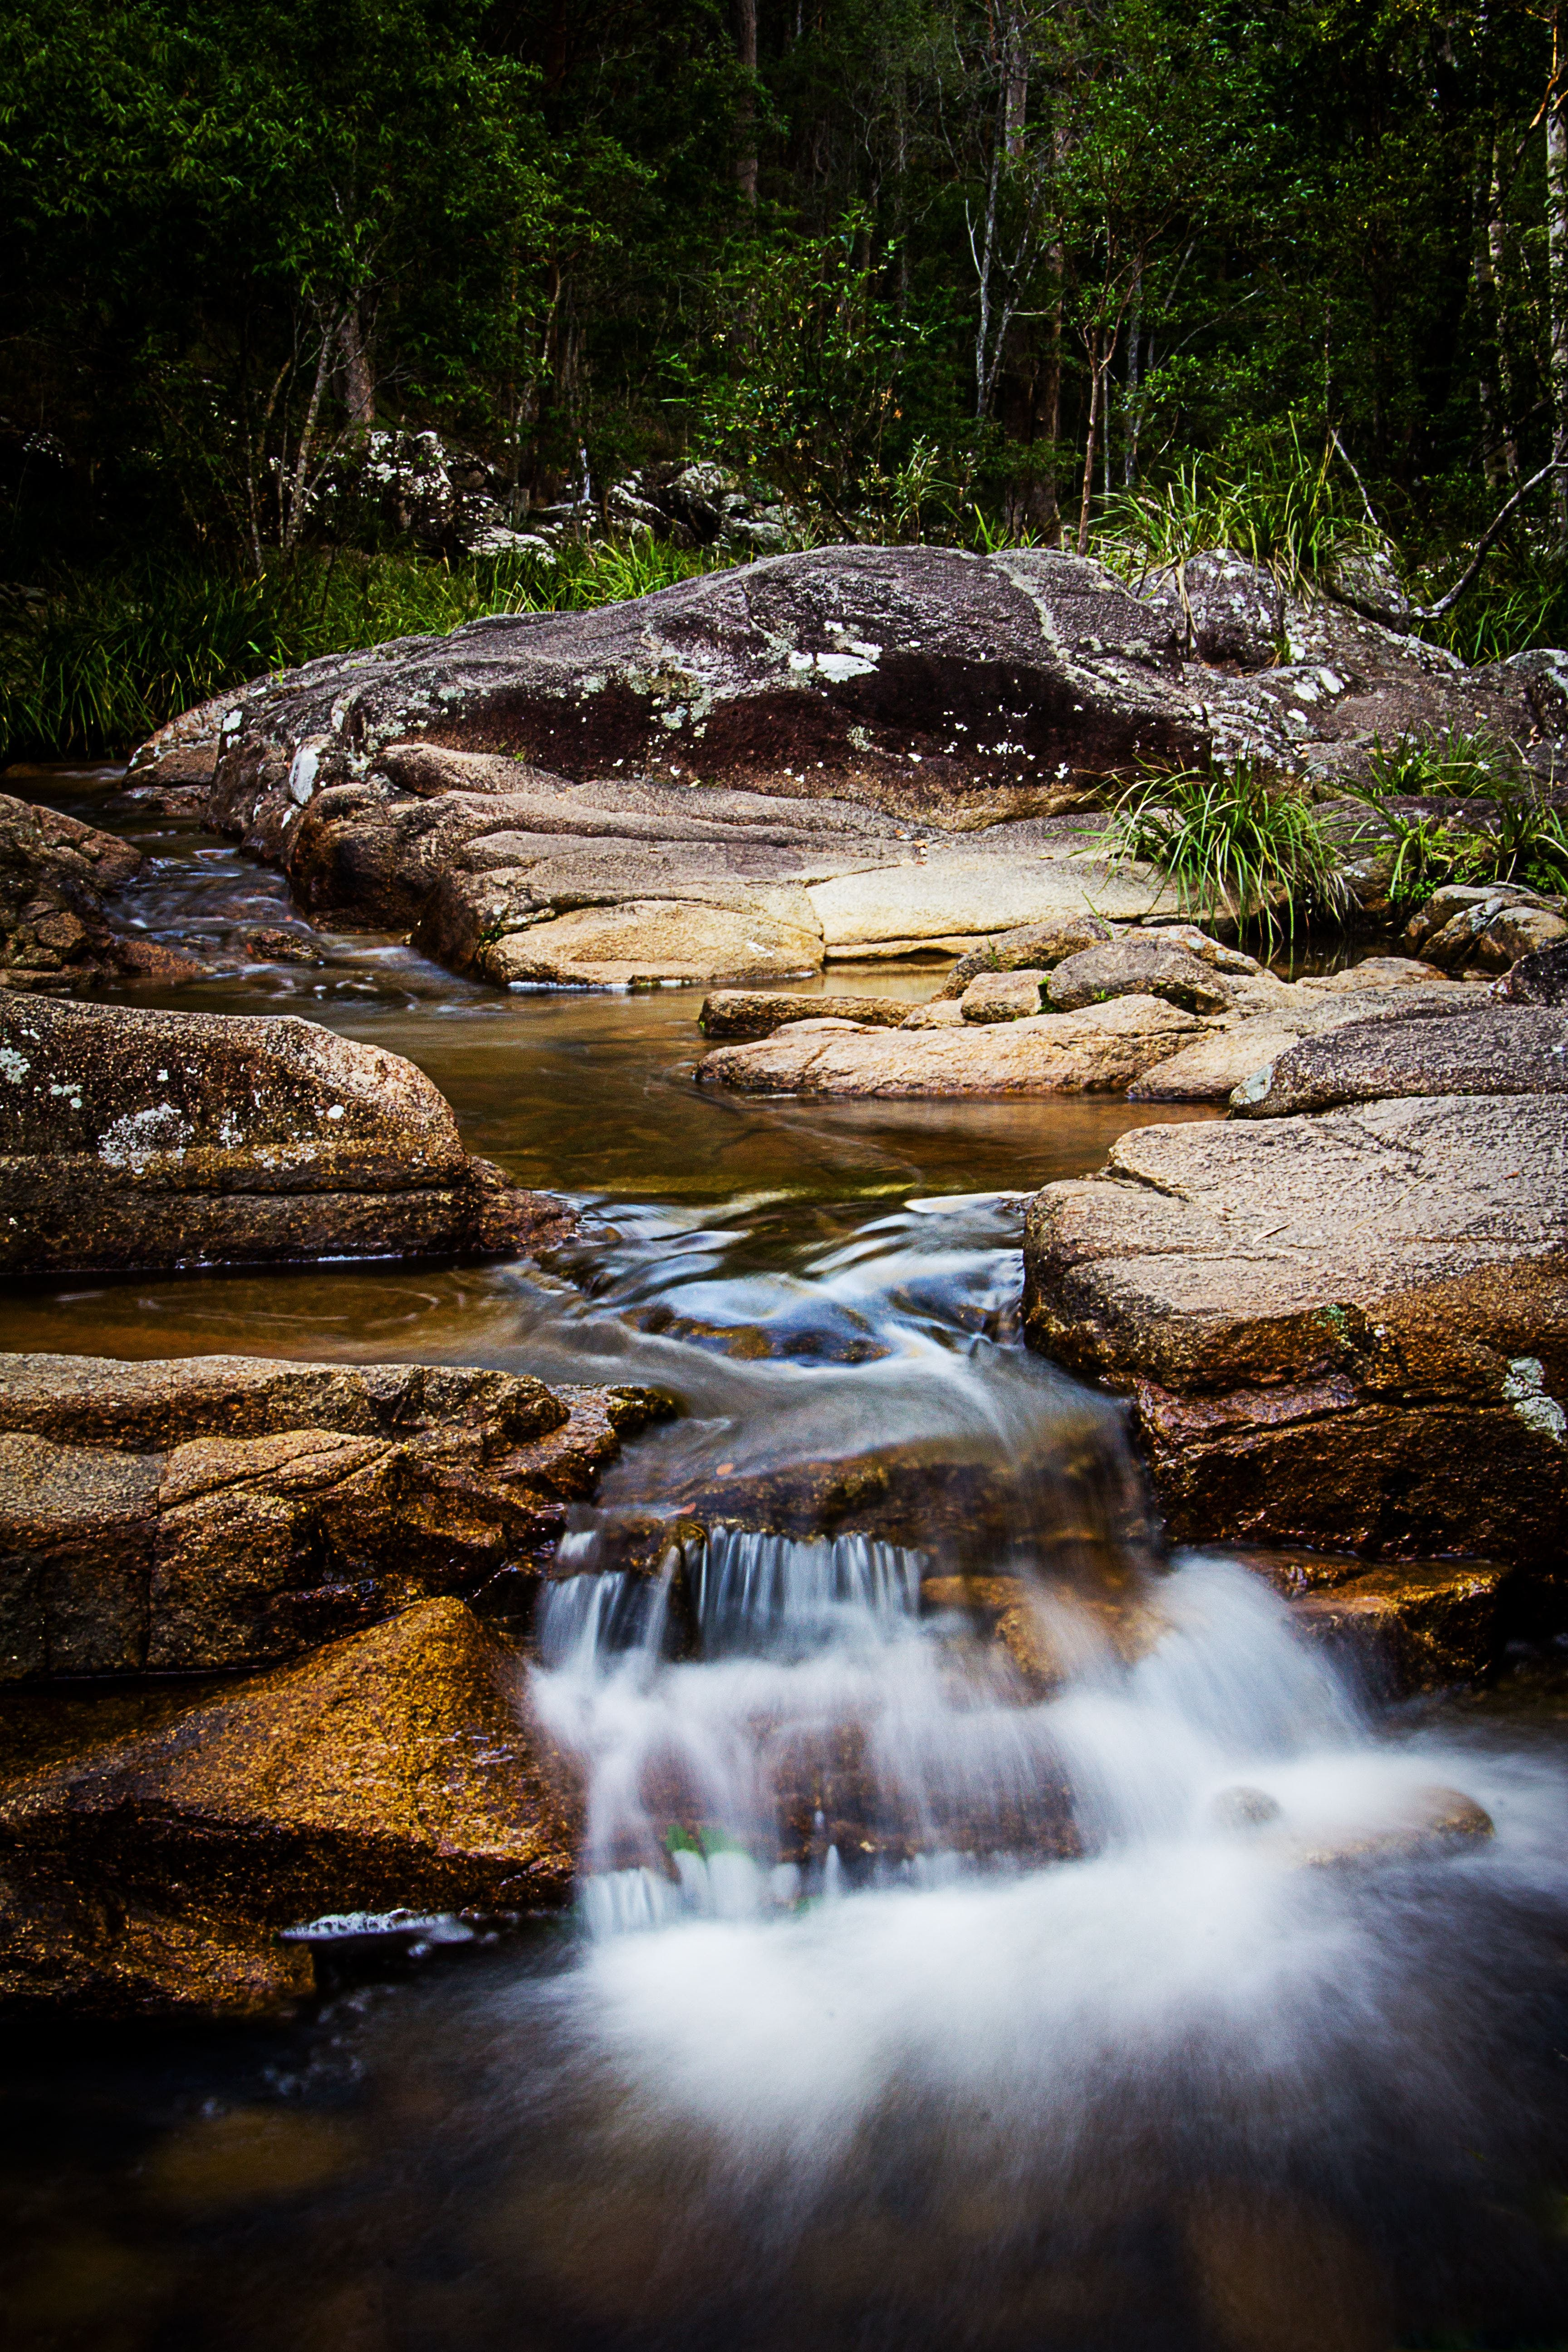 Mothar Mountain Rockpools - Accommodation Adelaide